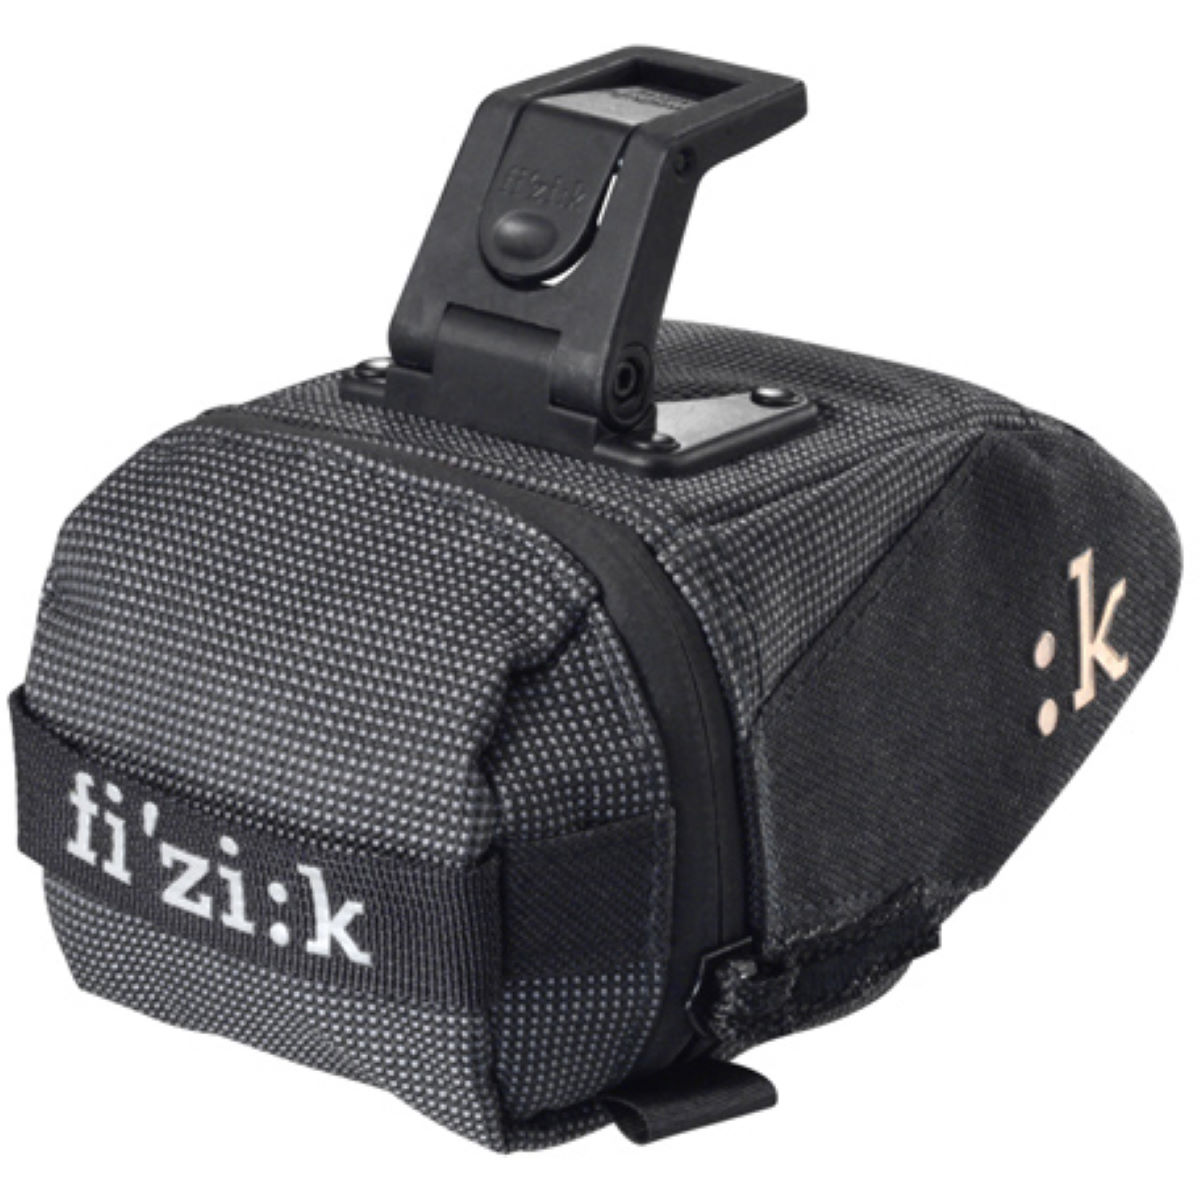 Fizik PA:K ICS Saddle Bag with Clip - Medium